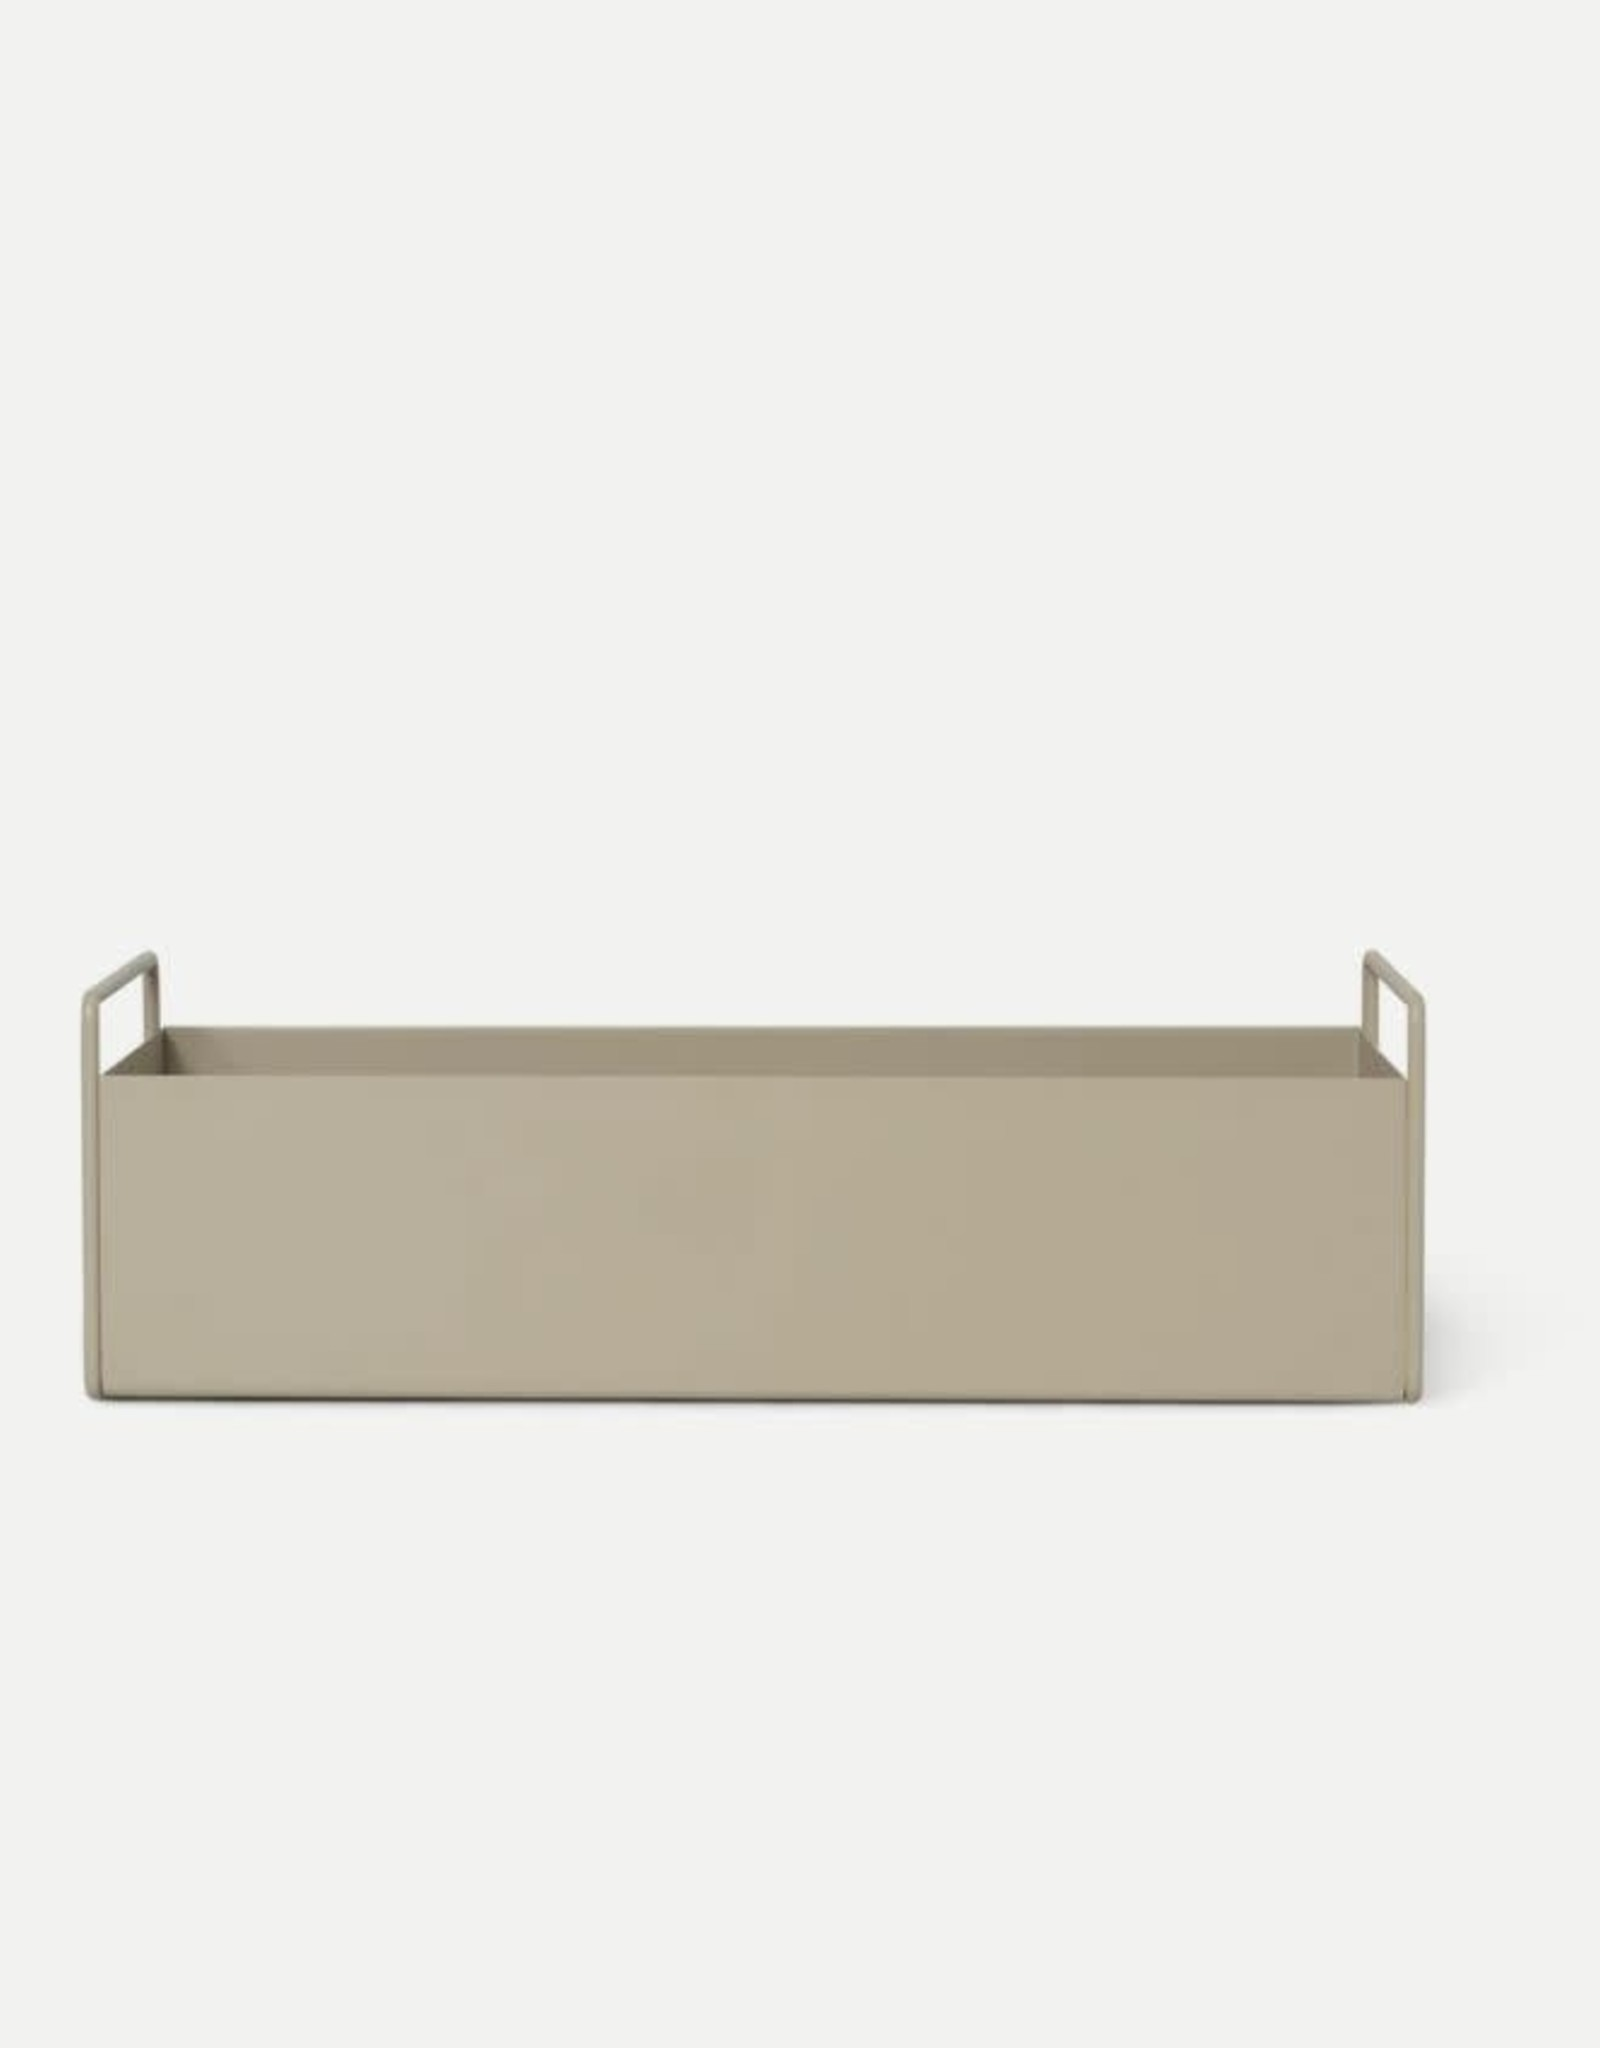 Ferm Living Plant Box - Small - Cashmere